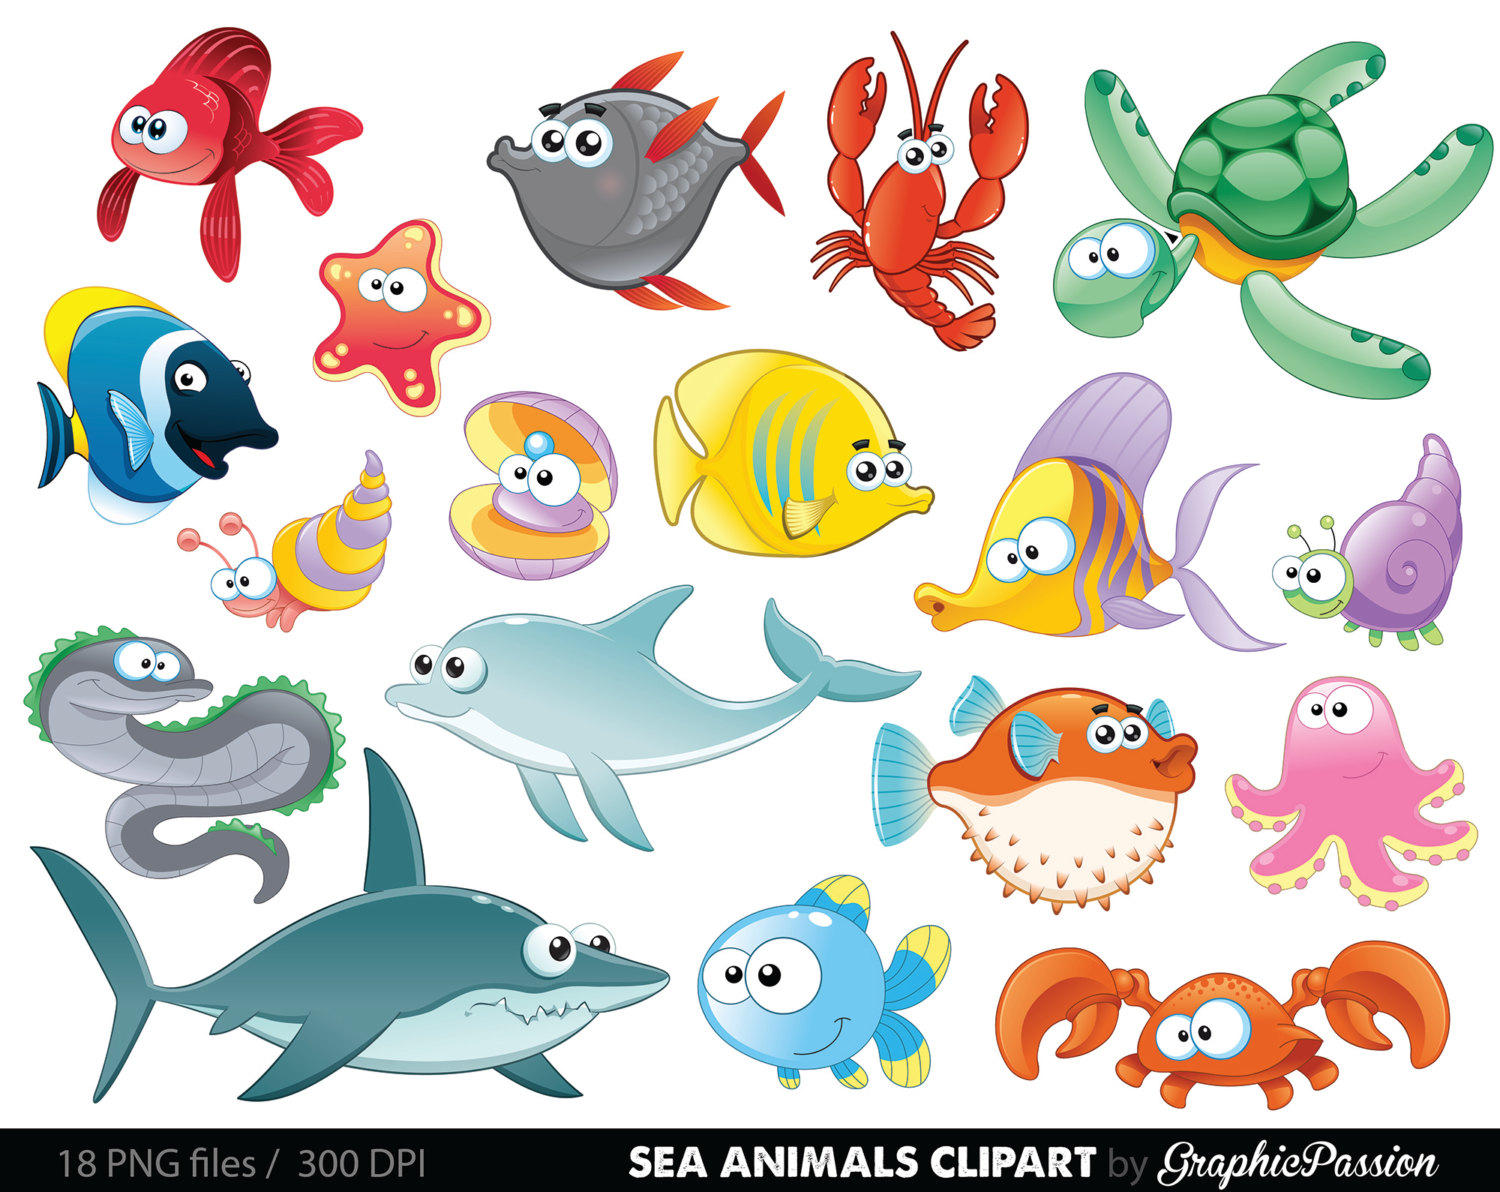 Sea Animal Clipart Under the Sea Baby Sea Creatures Clip Art Animal Clipart  Ocean clipart Sea